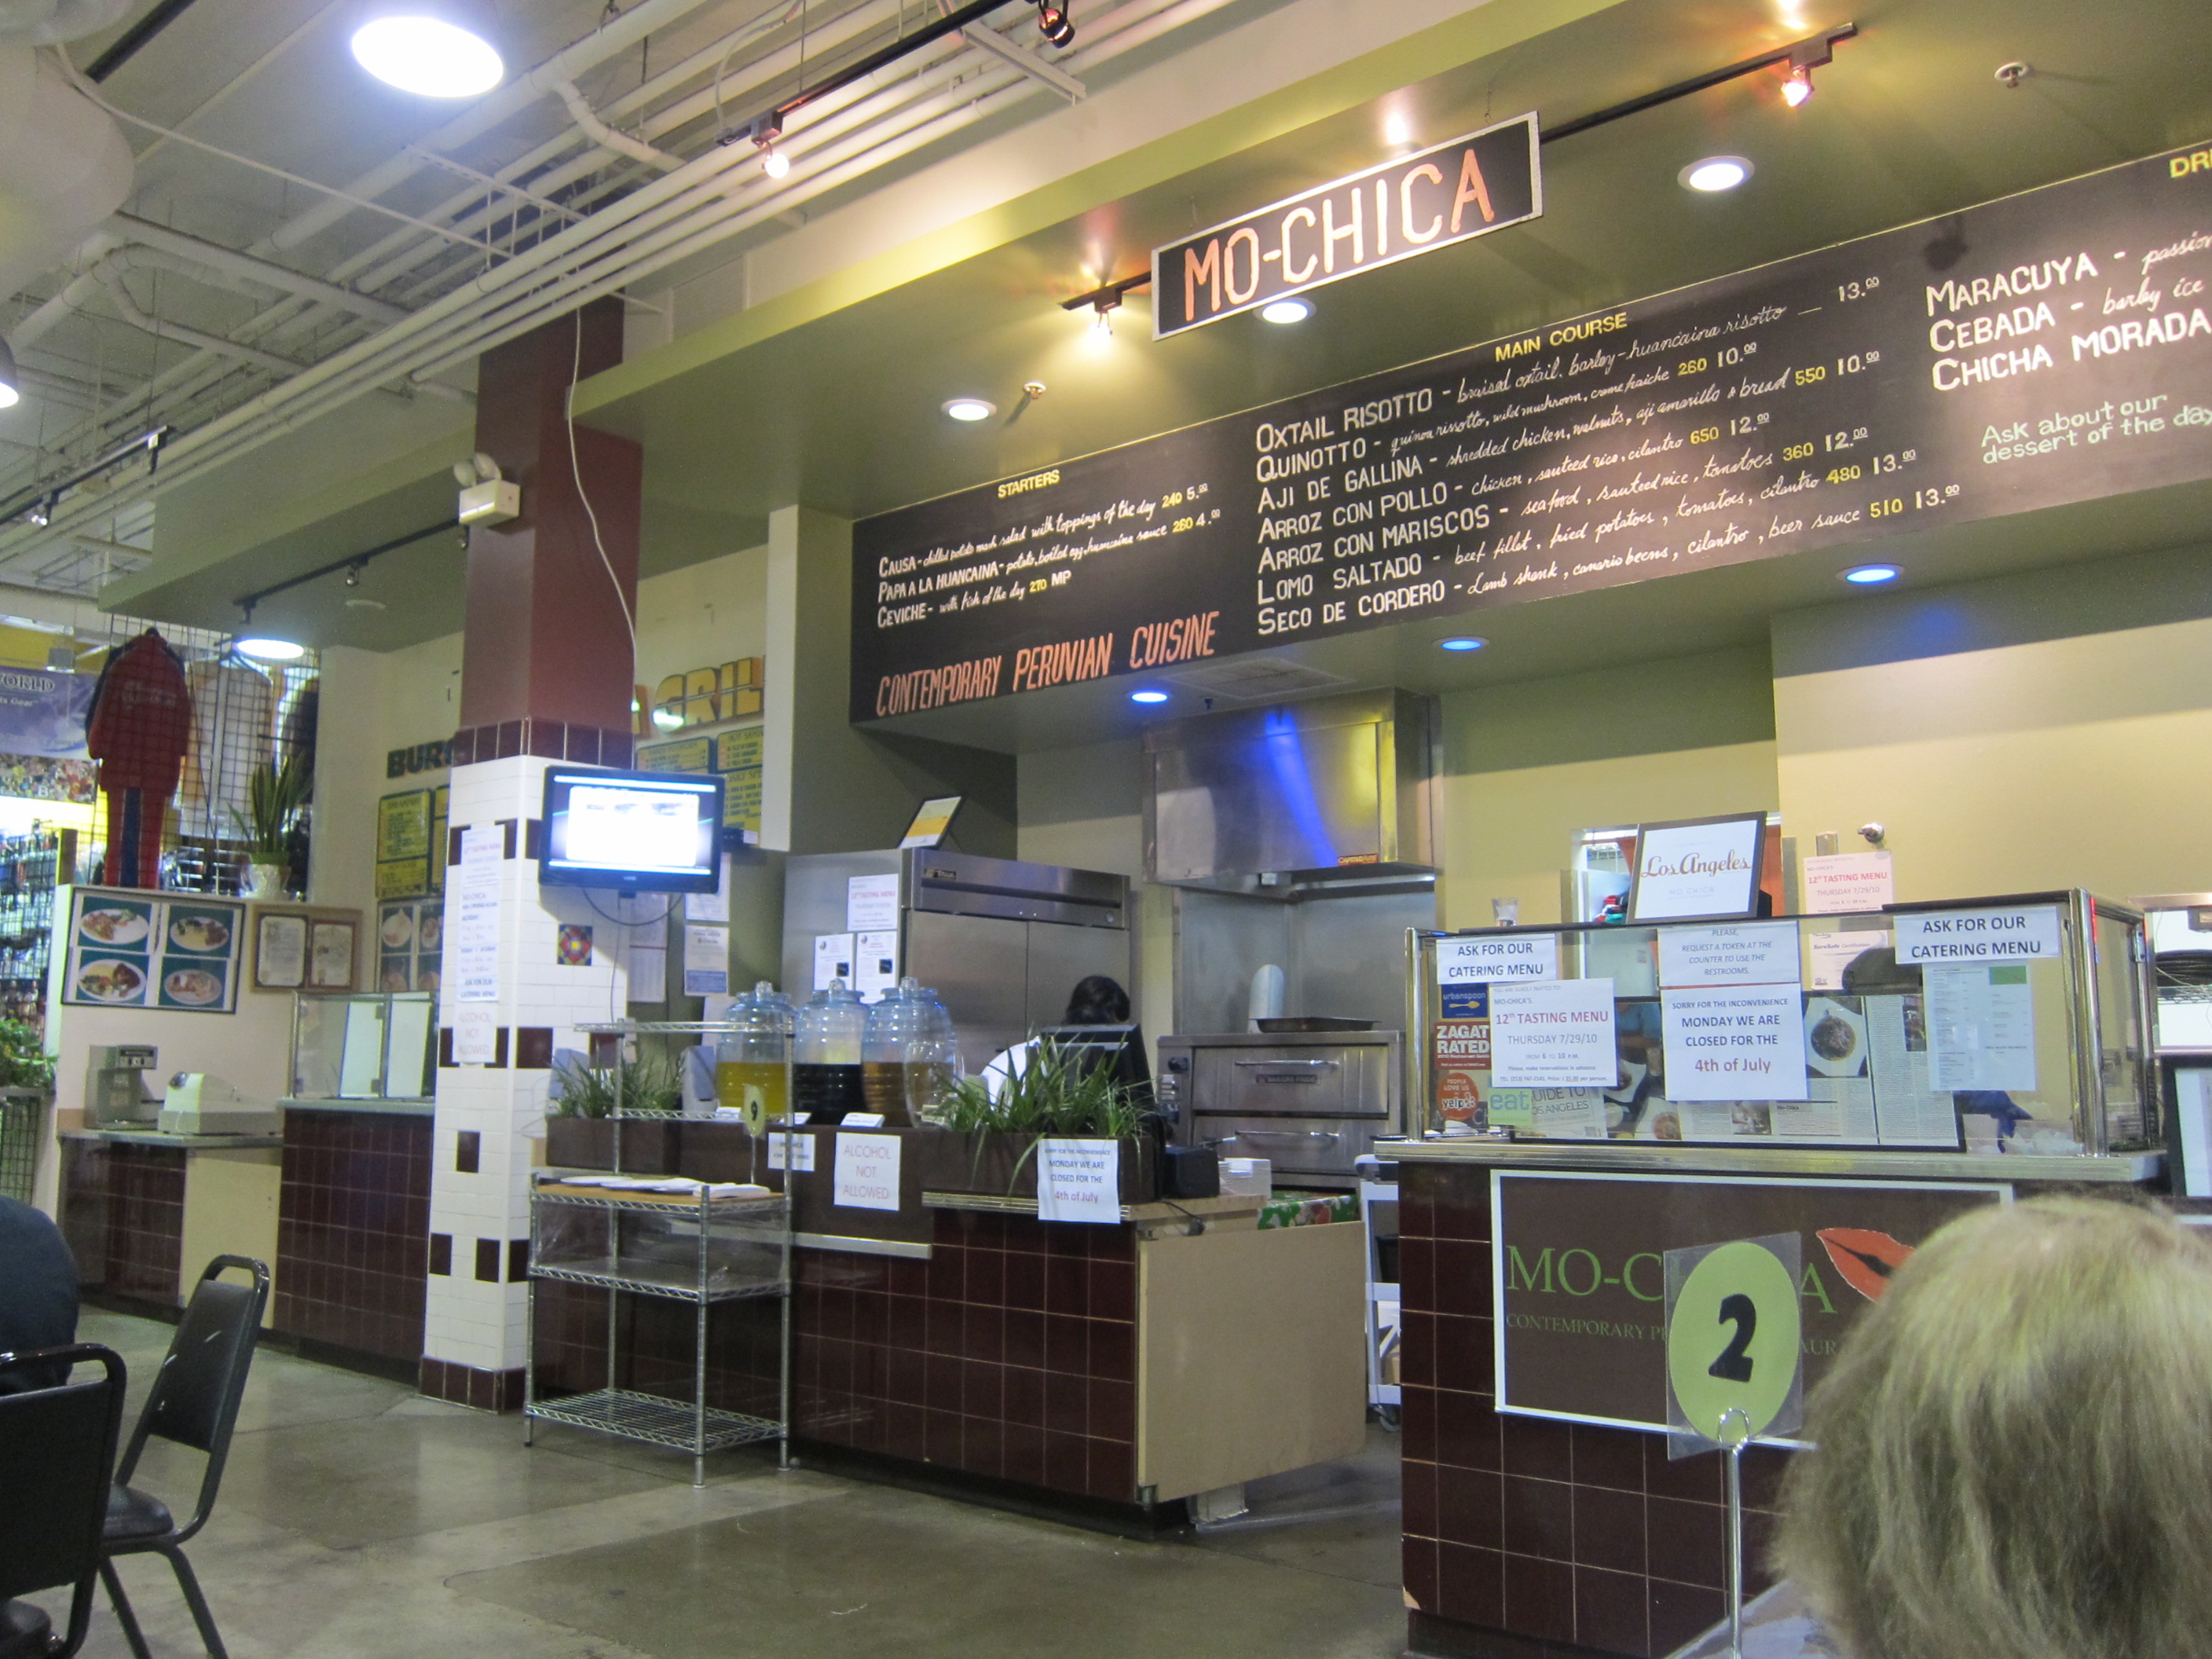 The bright, lively and commodious new space on 7th Street in downtown Los Angeles replaces the stand in the Mercado La Paloma where Mo-chica originated ...